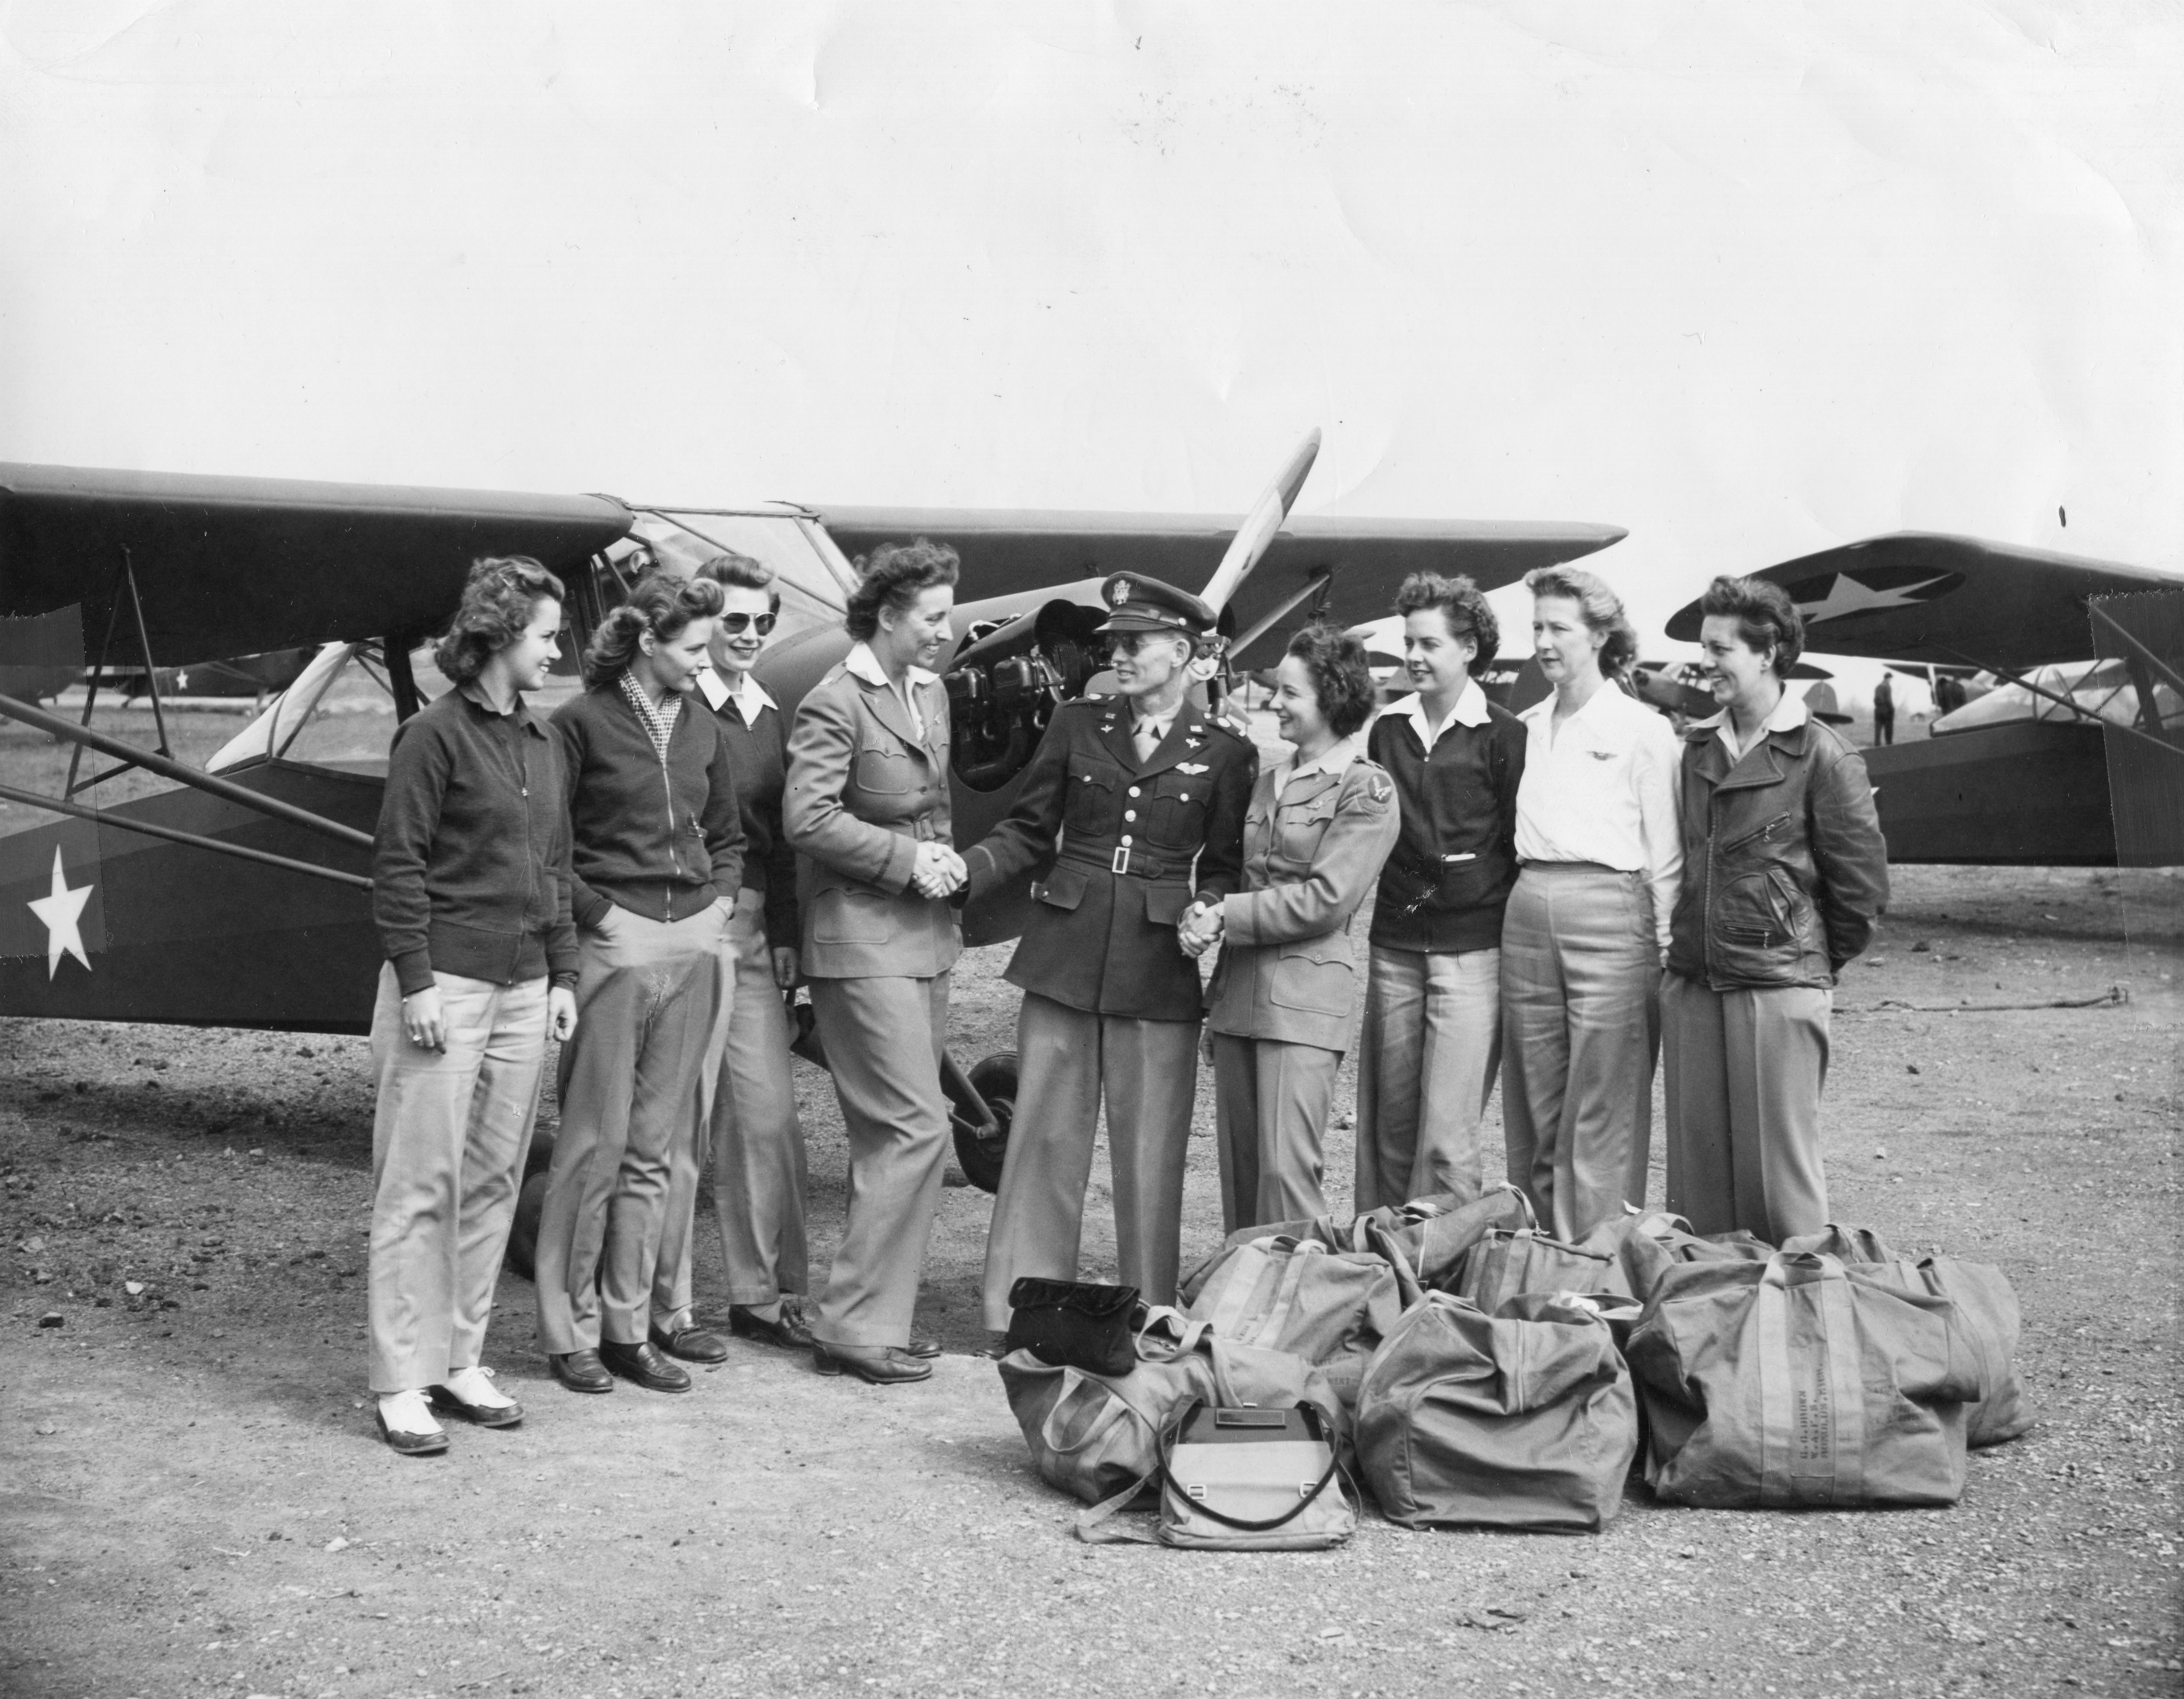 American military commander Lt. George Fairfield (center) shakes hands with Women's Air Force Service Pilot (WASP), and former Olympic swimming champion, Katherine Rawls Thompson (fourth left), and another unidentified pilot, as they are watched by six additional WASPs, all of whom had flown L-2 'Grasshopper' liaison planes to various Army bases from the Taylorcraft factory, Alliance, Ohio, in June 1943.